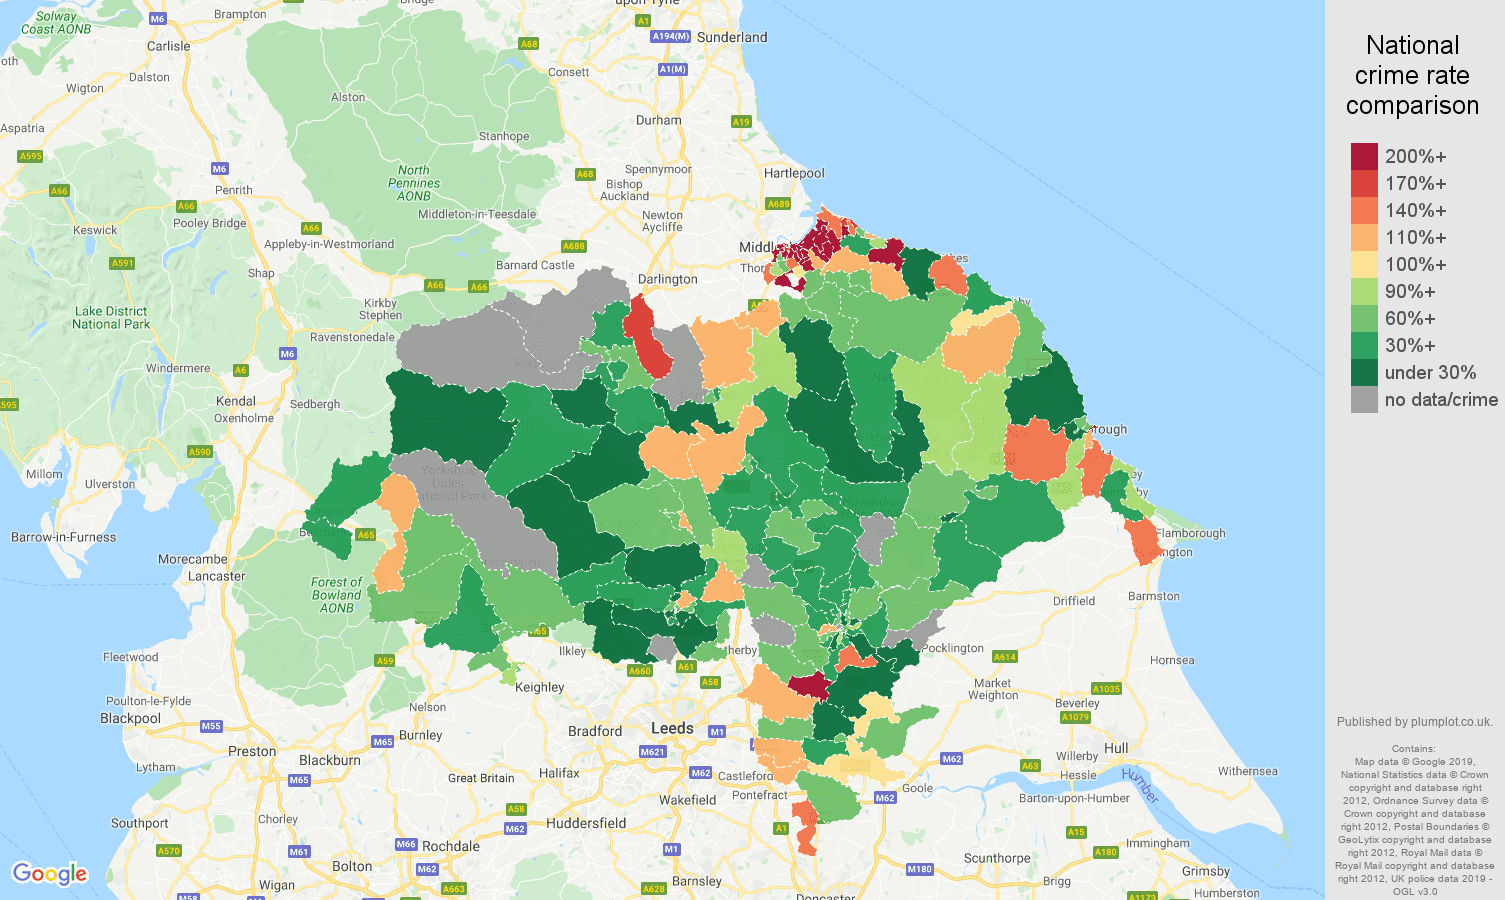 North Yorkshire other crime rate comparison map